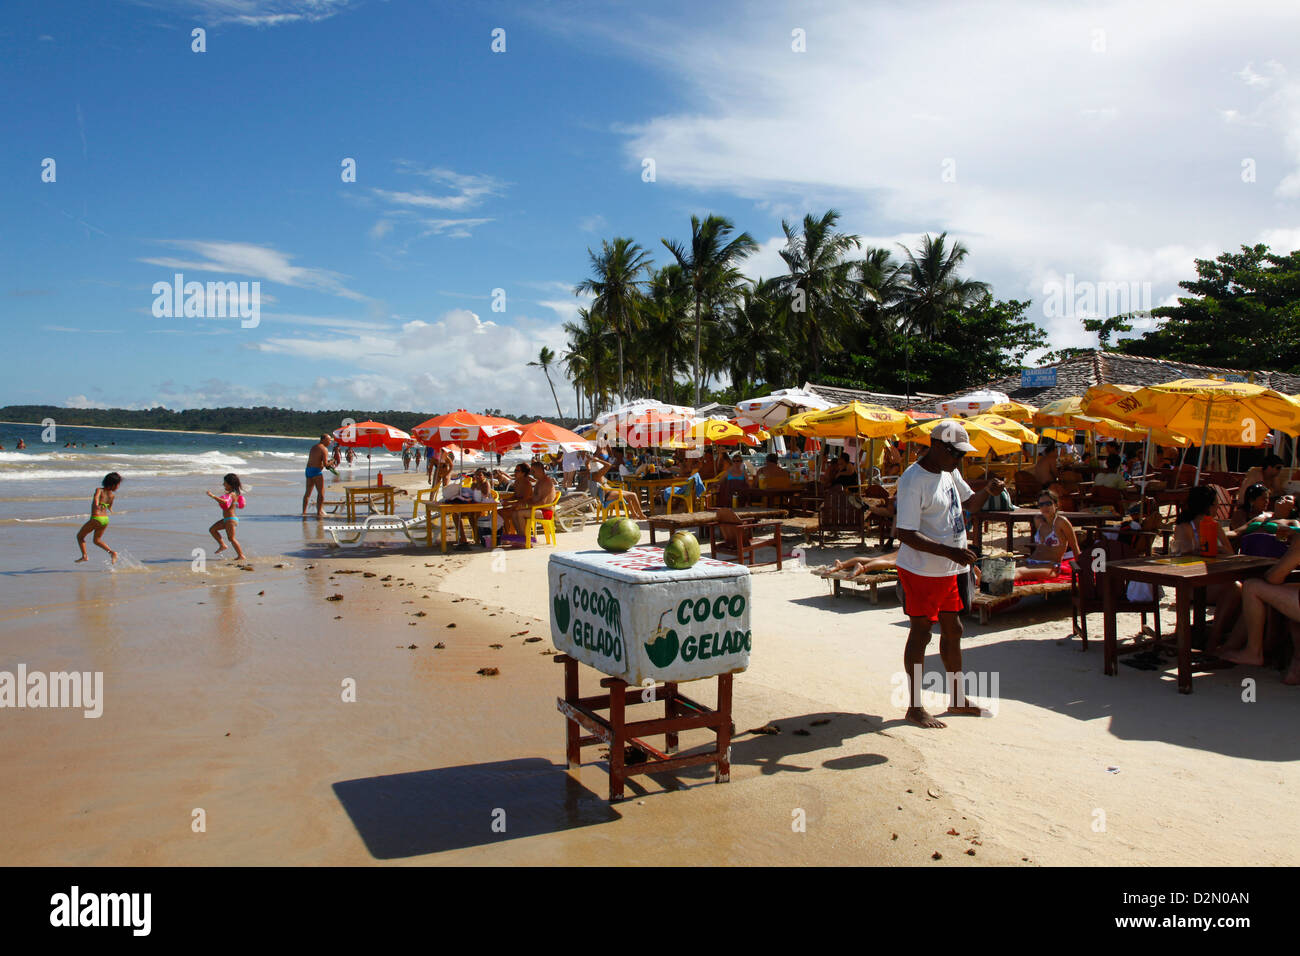 People at Praia Dos Coqueiros beach, Trancoso, Bahia, Brazil, South America - Stock Image